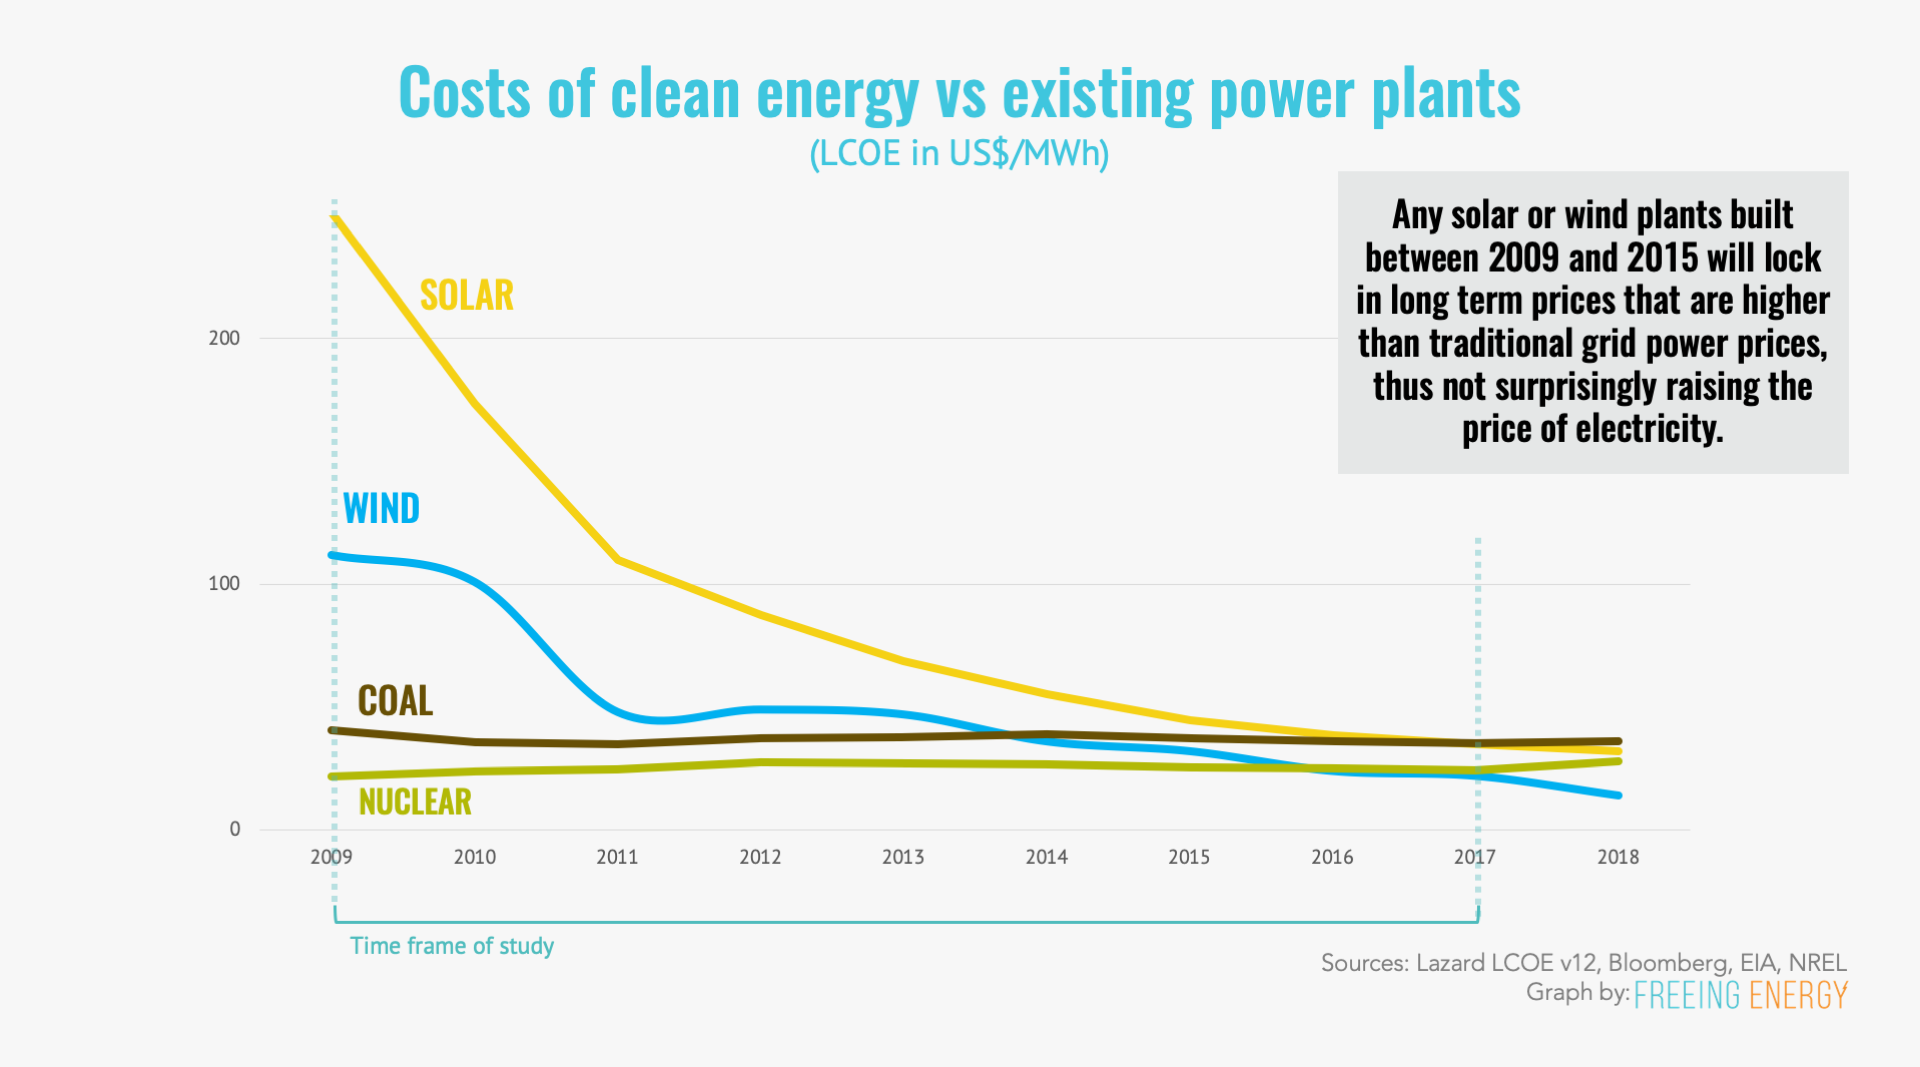 During most of the 2009-2017 years of the study, solar and wind were far more expensive that traditional grid power